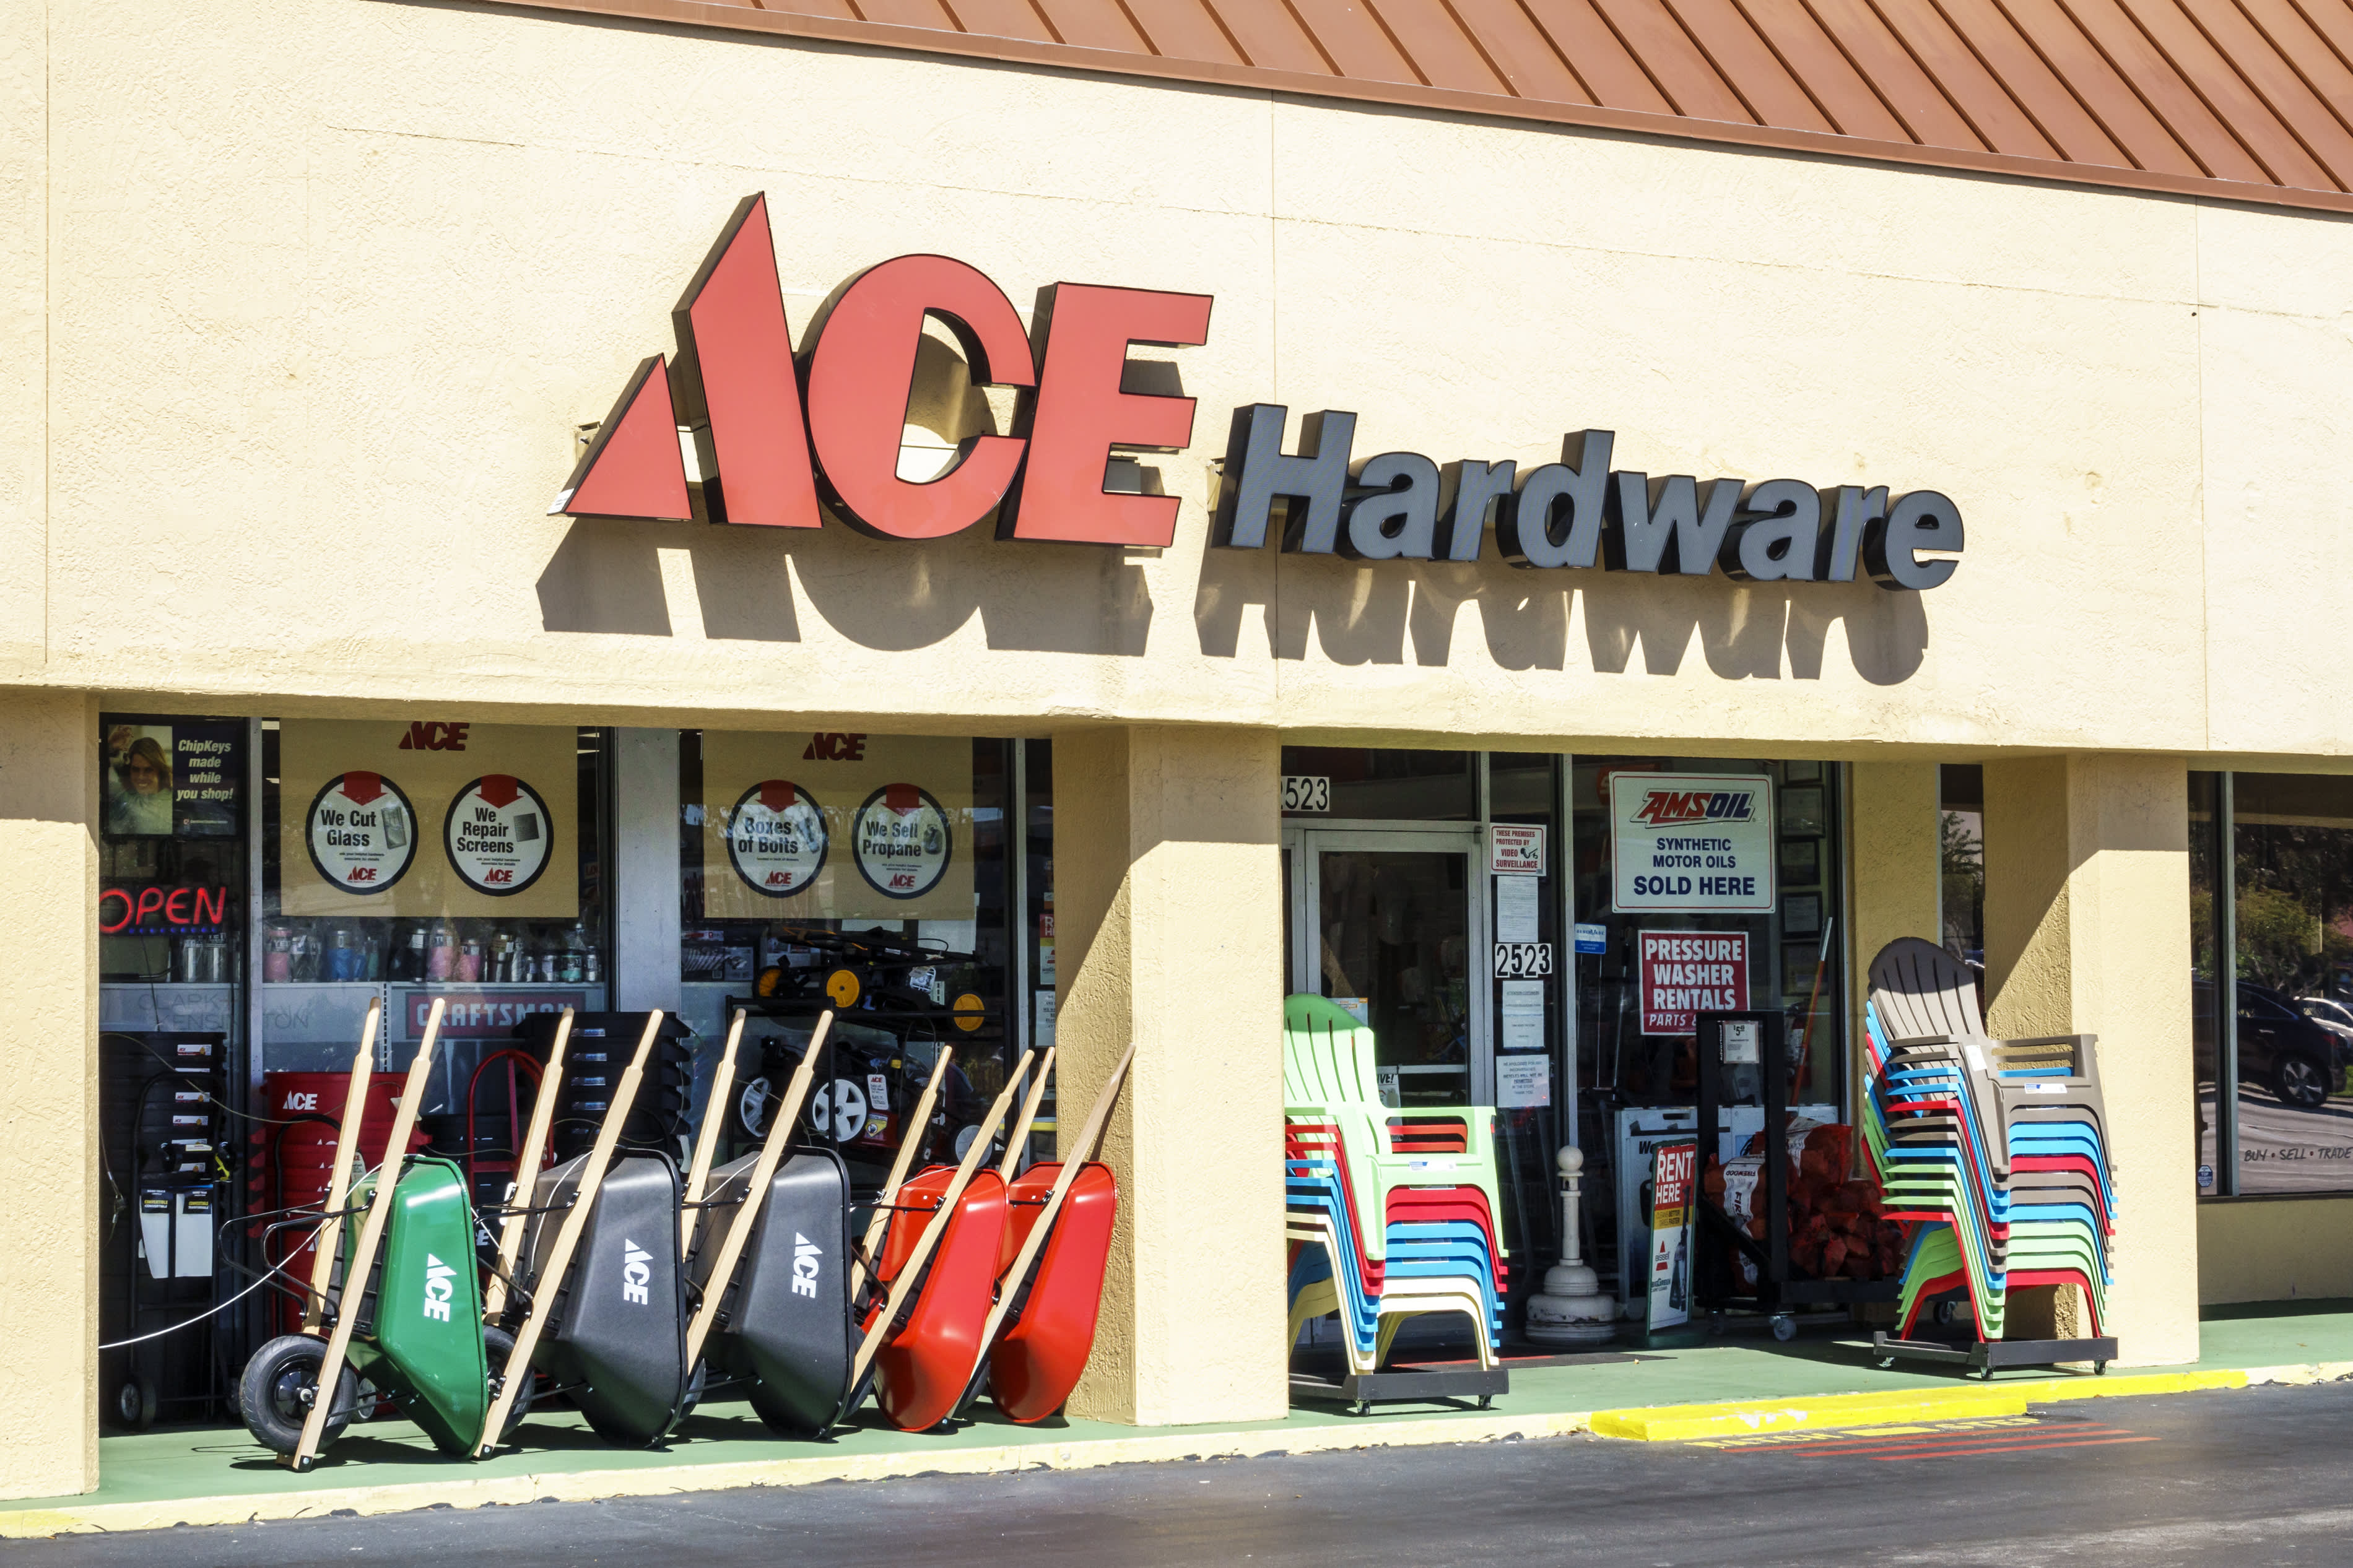 Ace Hardware CEO: Moving supply chain out of China is not 'quick fix'